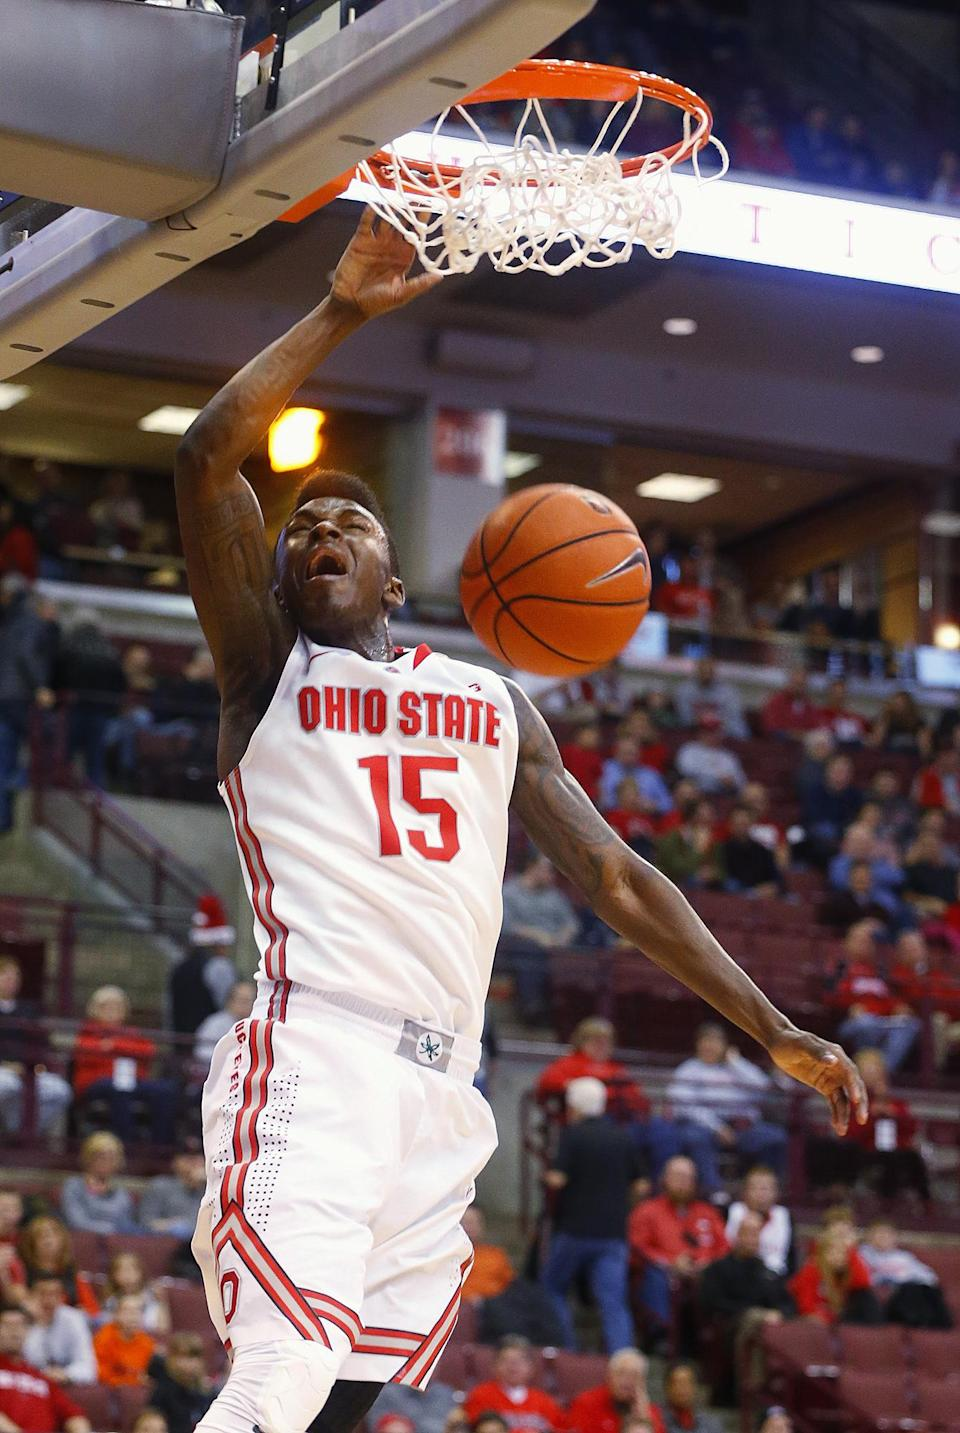 Ohio State's Kam Williams (15) dunks against Miami during the second half of an NCAA college basketball game, Monday, Dec. 22, 2014, in Columbus, Ohio. Ohio State won 93-55. (AP Photo/Mike Munden)